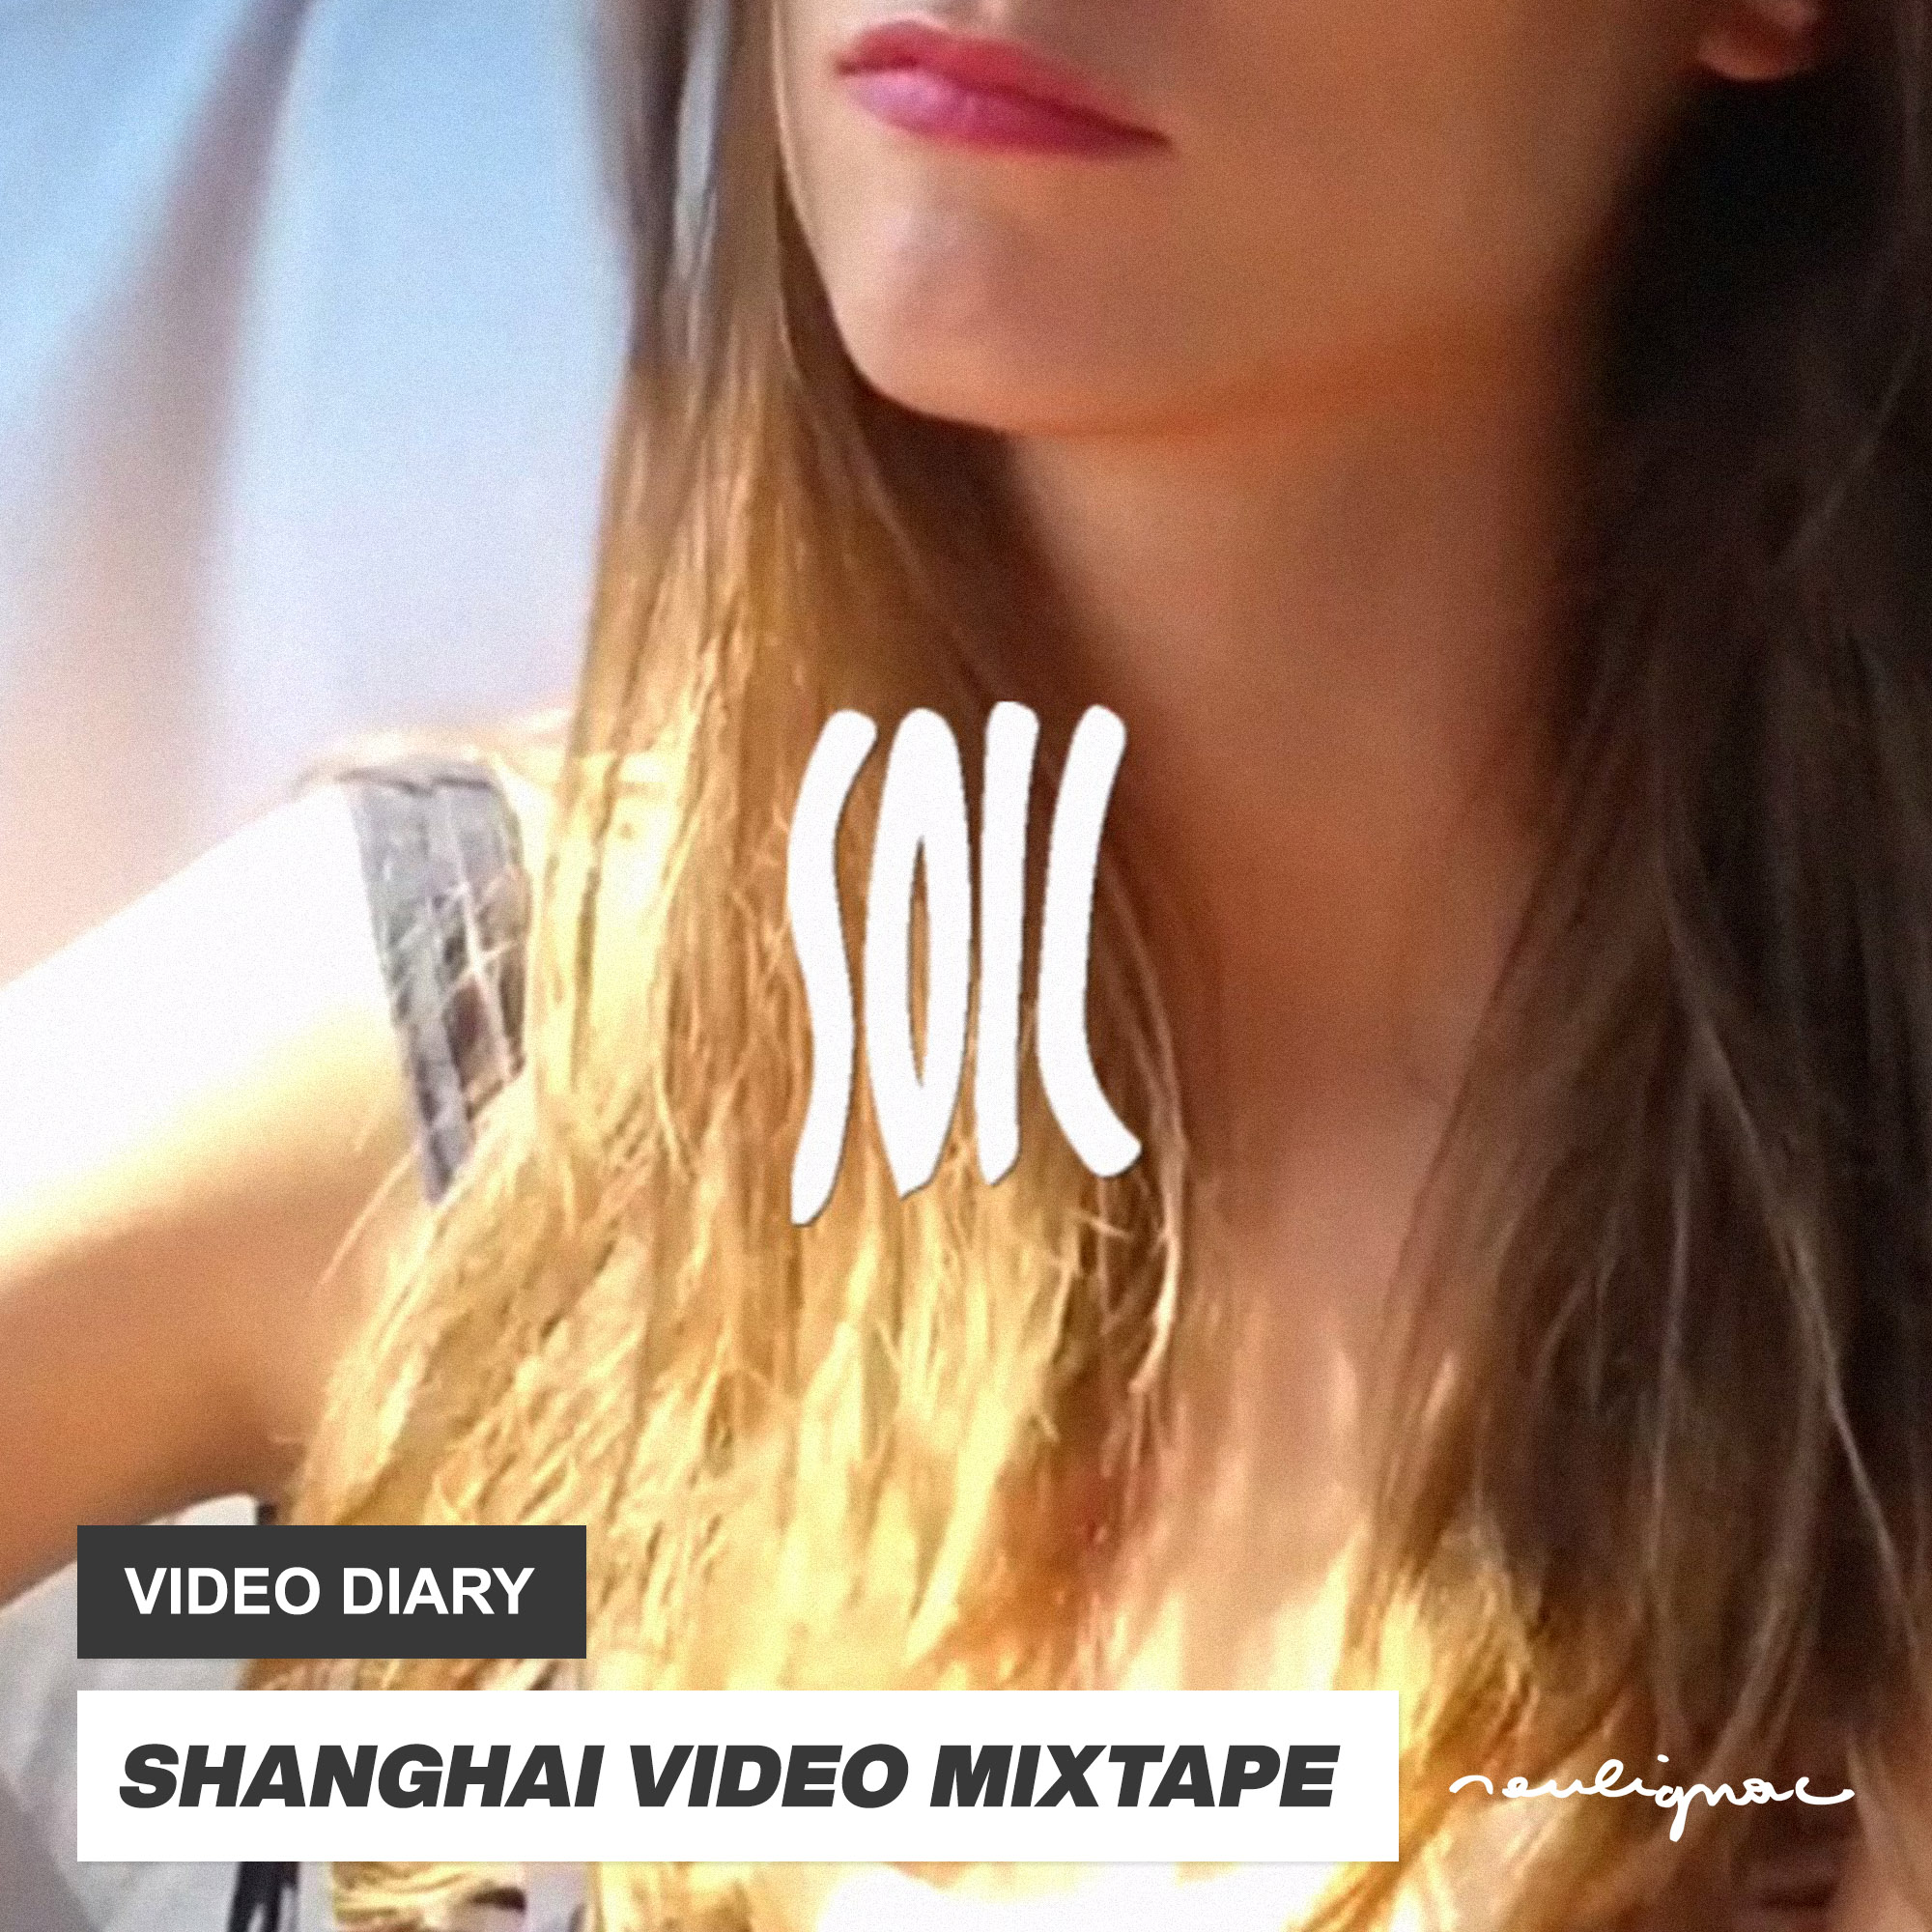 Shanghai Video Mixtape - China